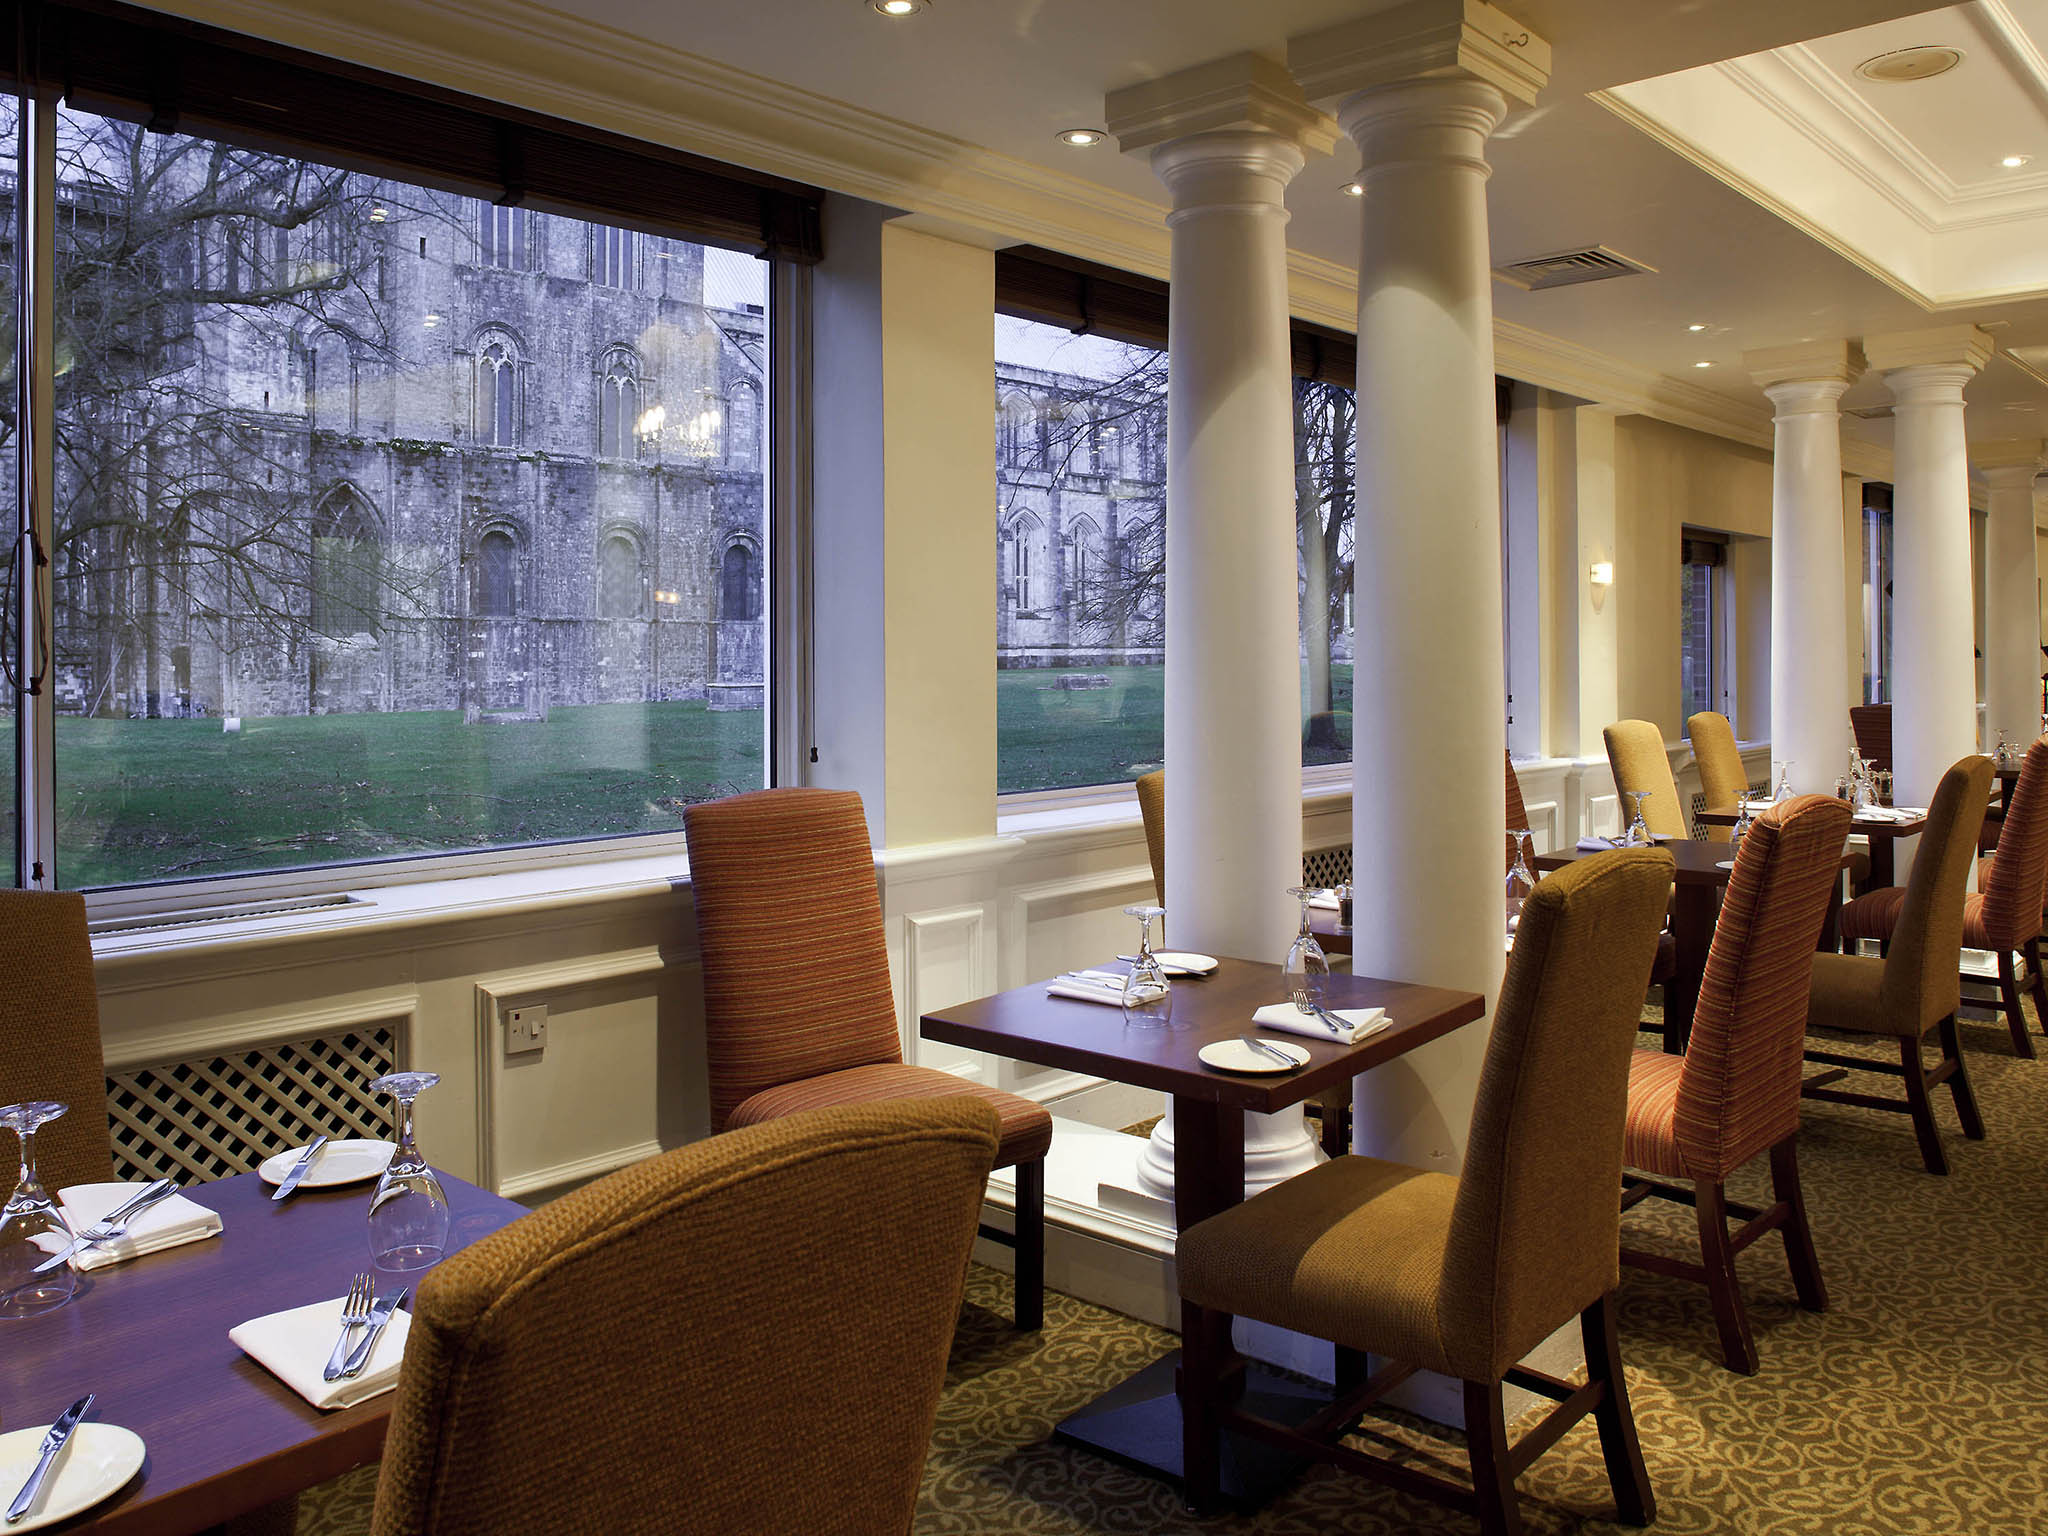 Restaurant Mercure Winchester Wes Hotel